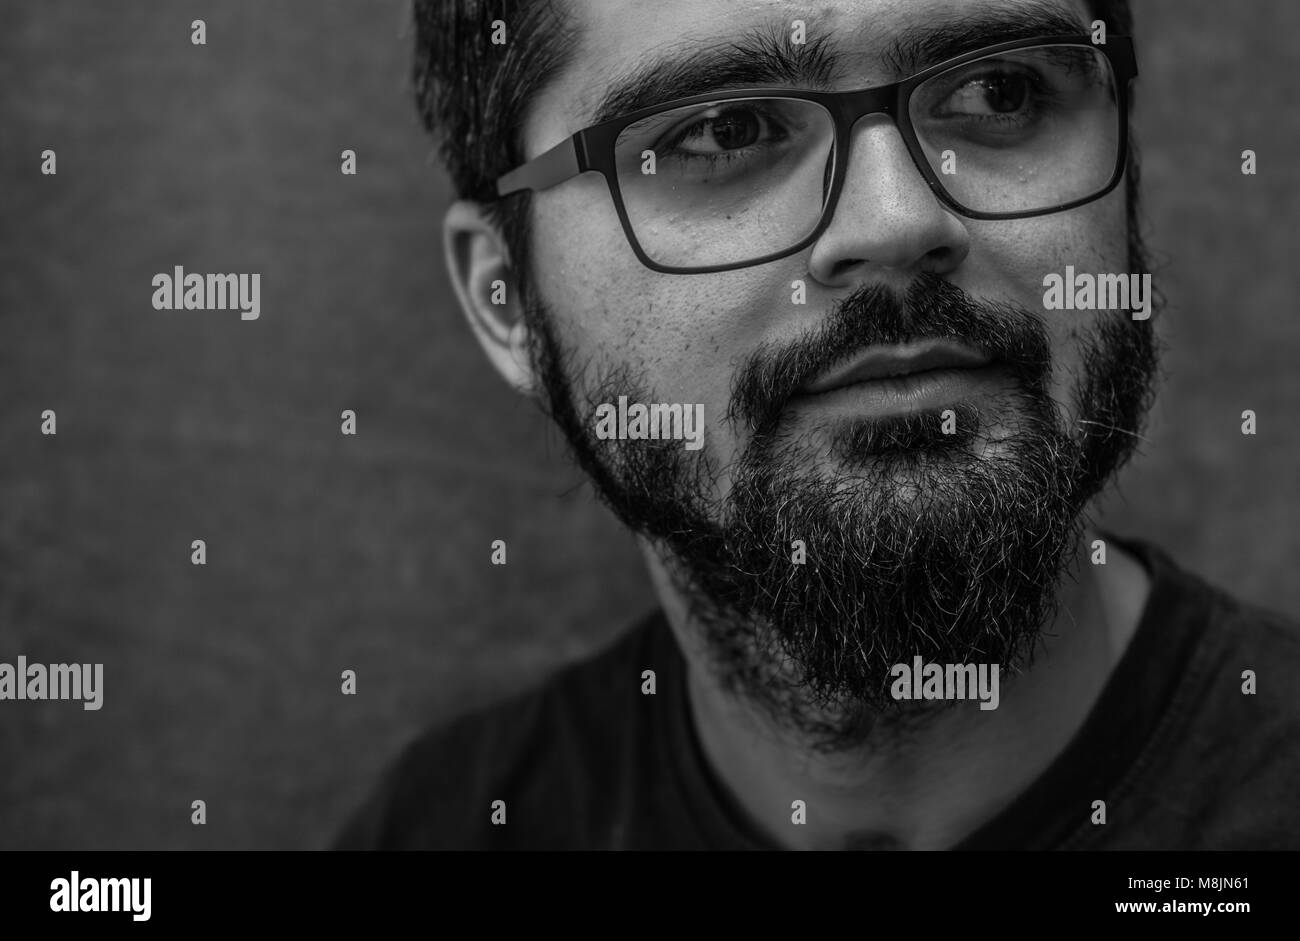 portrait of a man with glasses - Stock Image